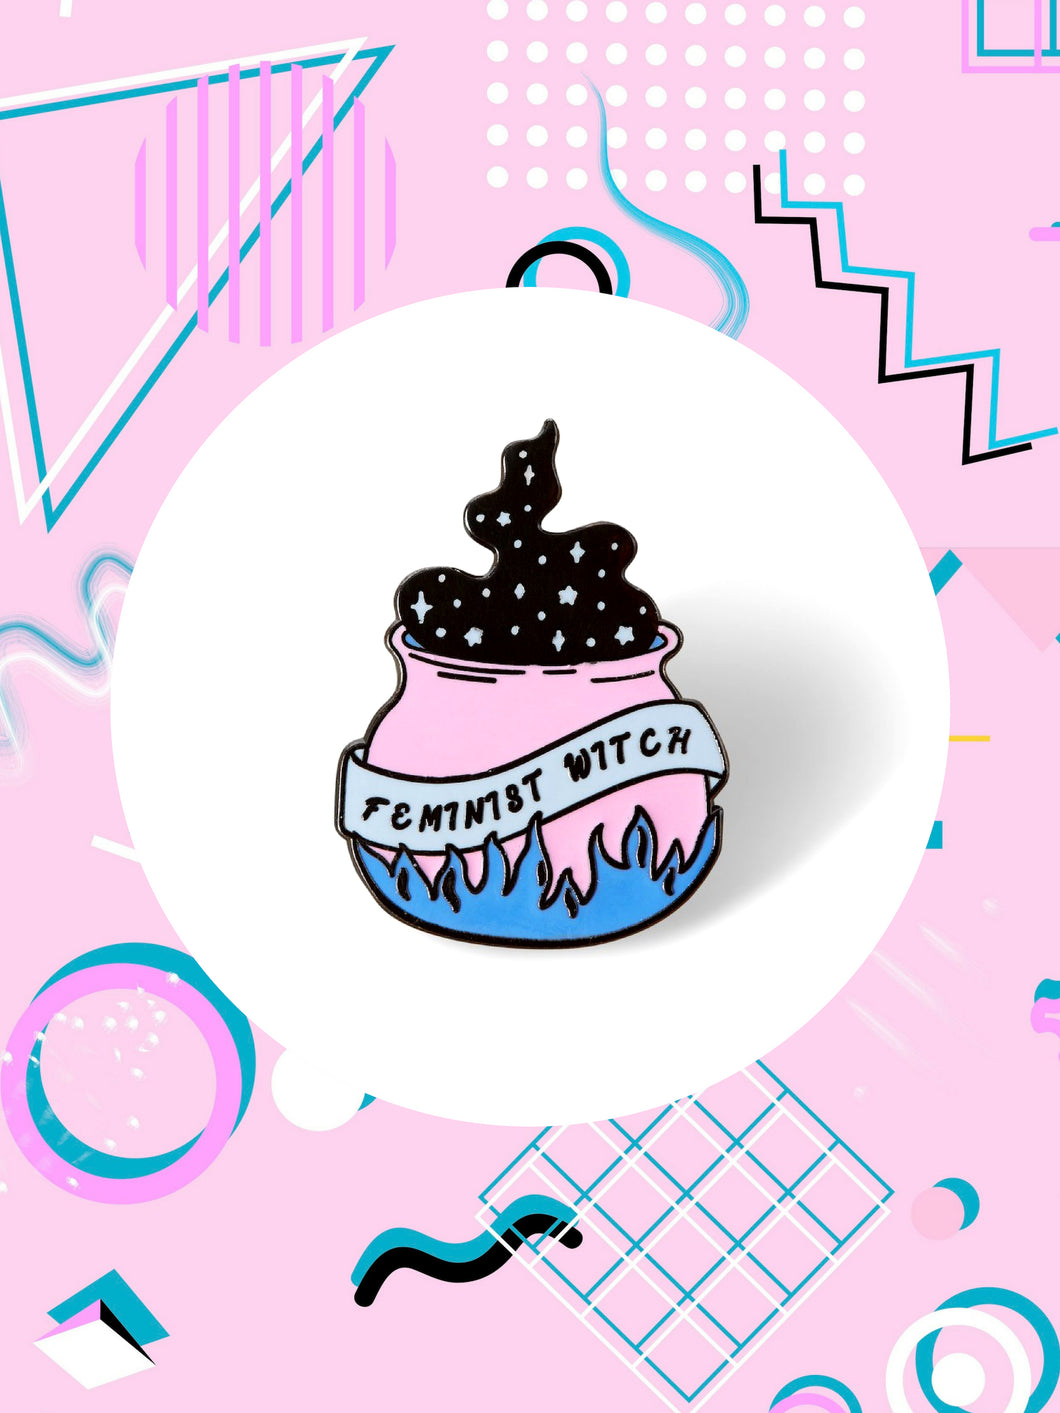 Feminist Witch Pin